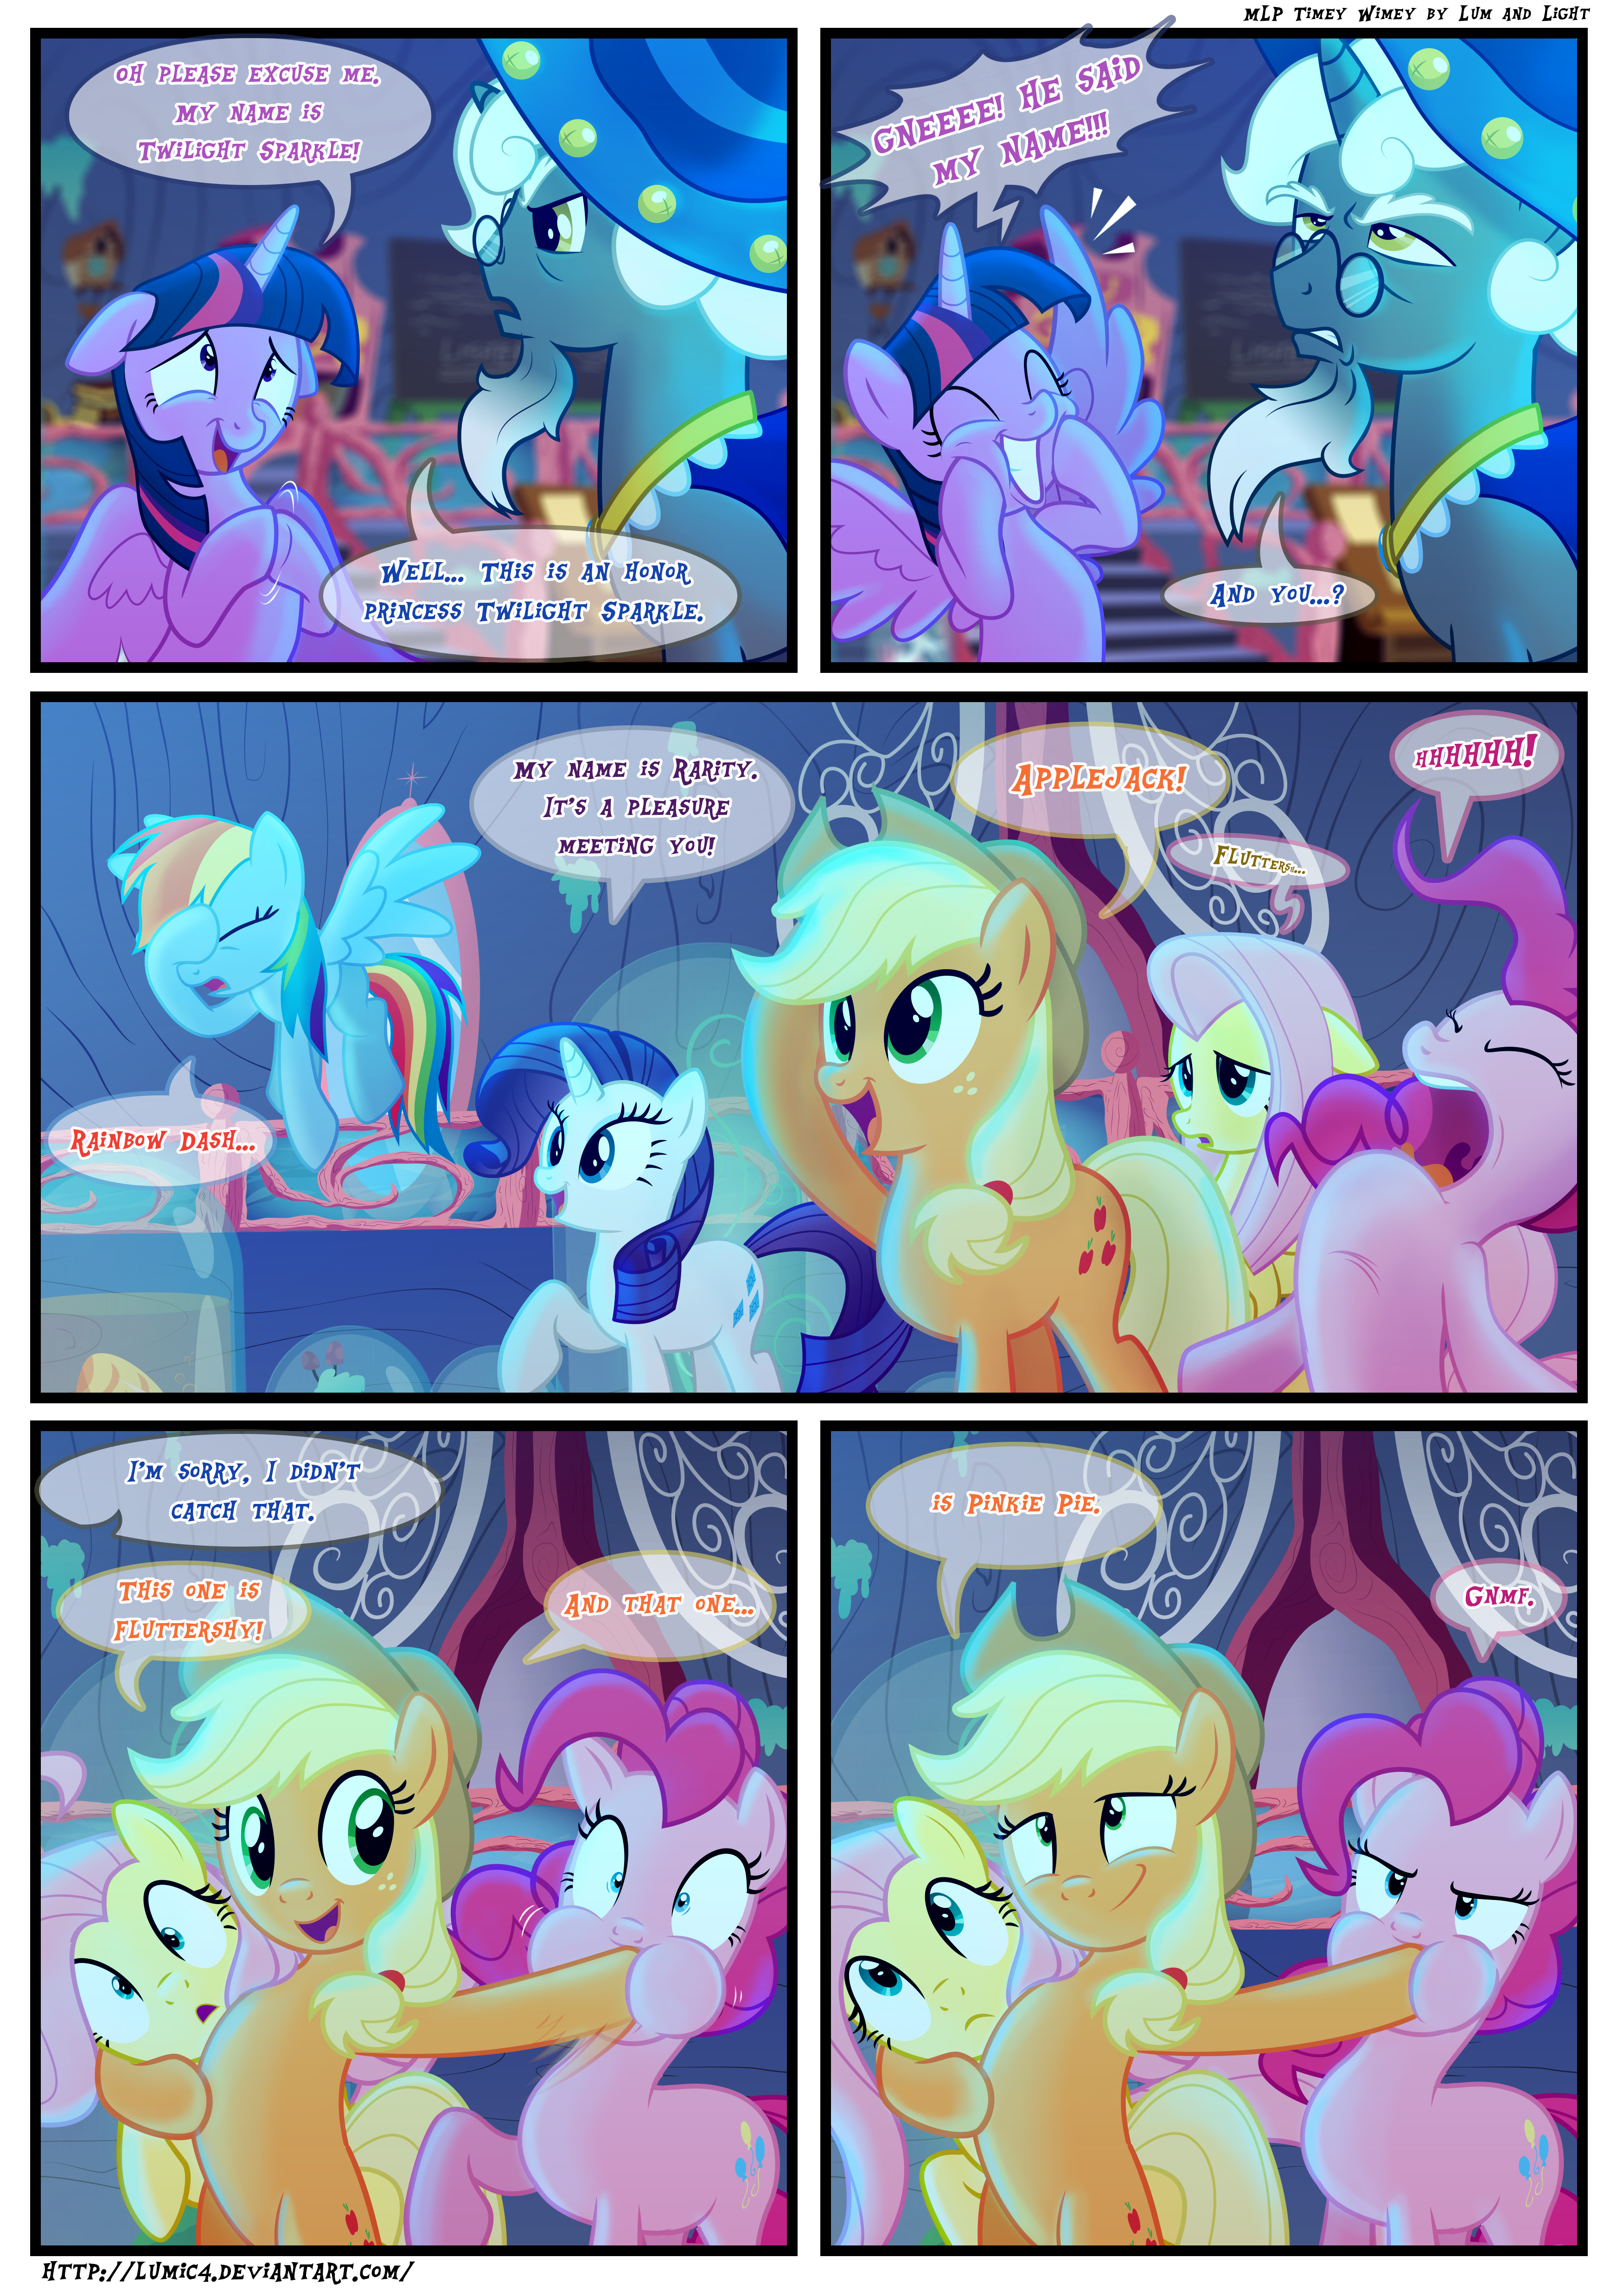 Mlp Timey Wimey Page46 By Light262 On Deviantart